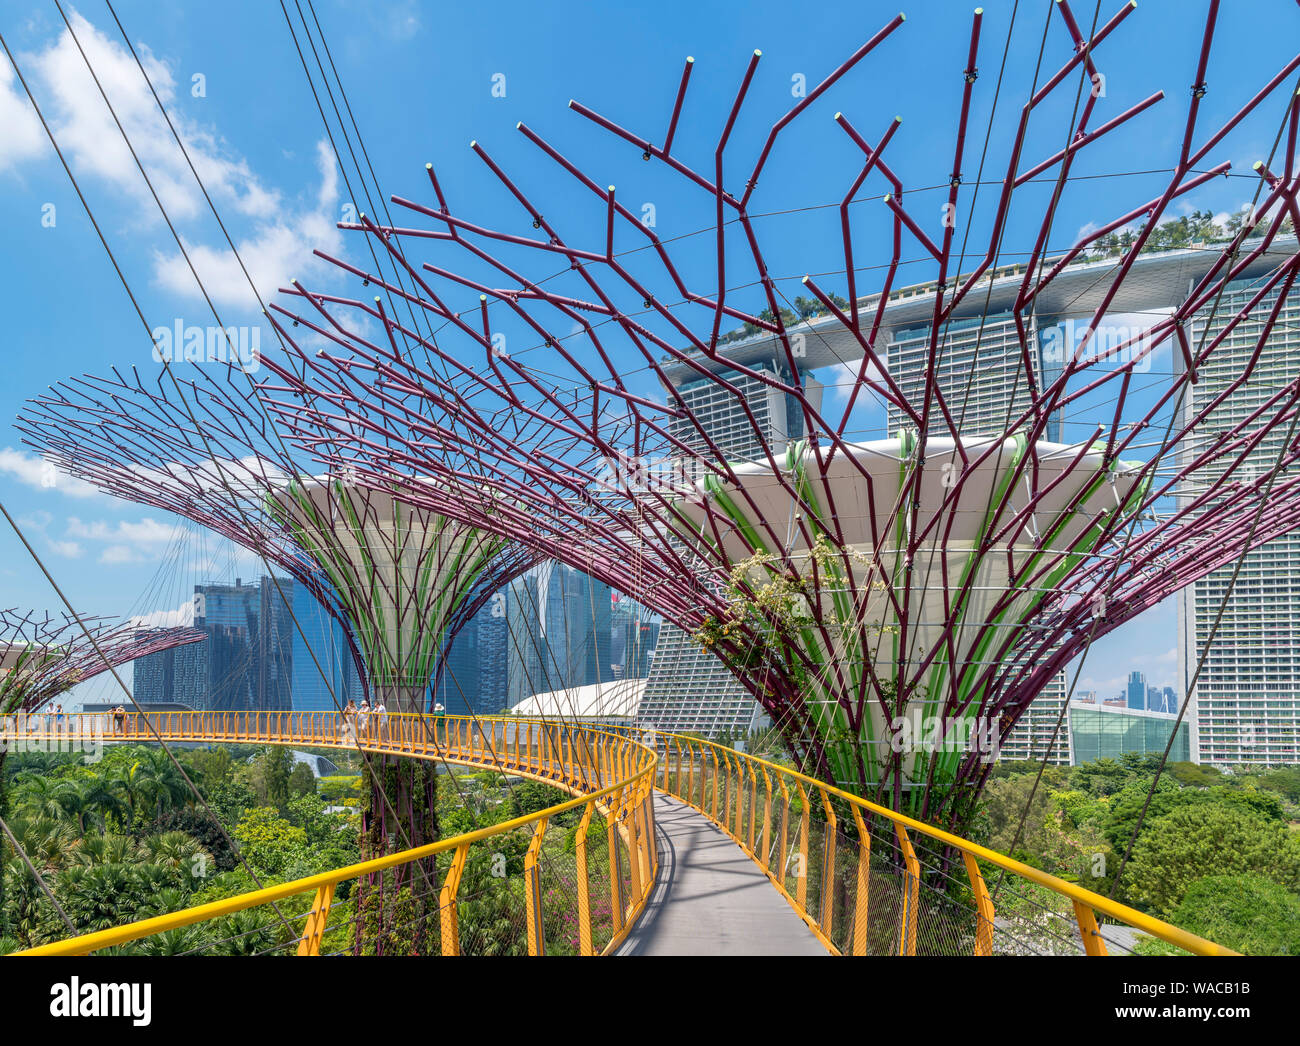 The OCBC Skyway, an aerial walkway in the Supertree Grove, looking towards Marina Bay Sands, Gardens by the Bay, Singapore City, Singapore Stock Photo